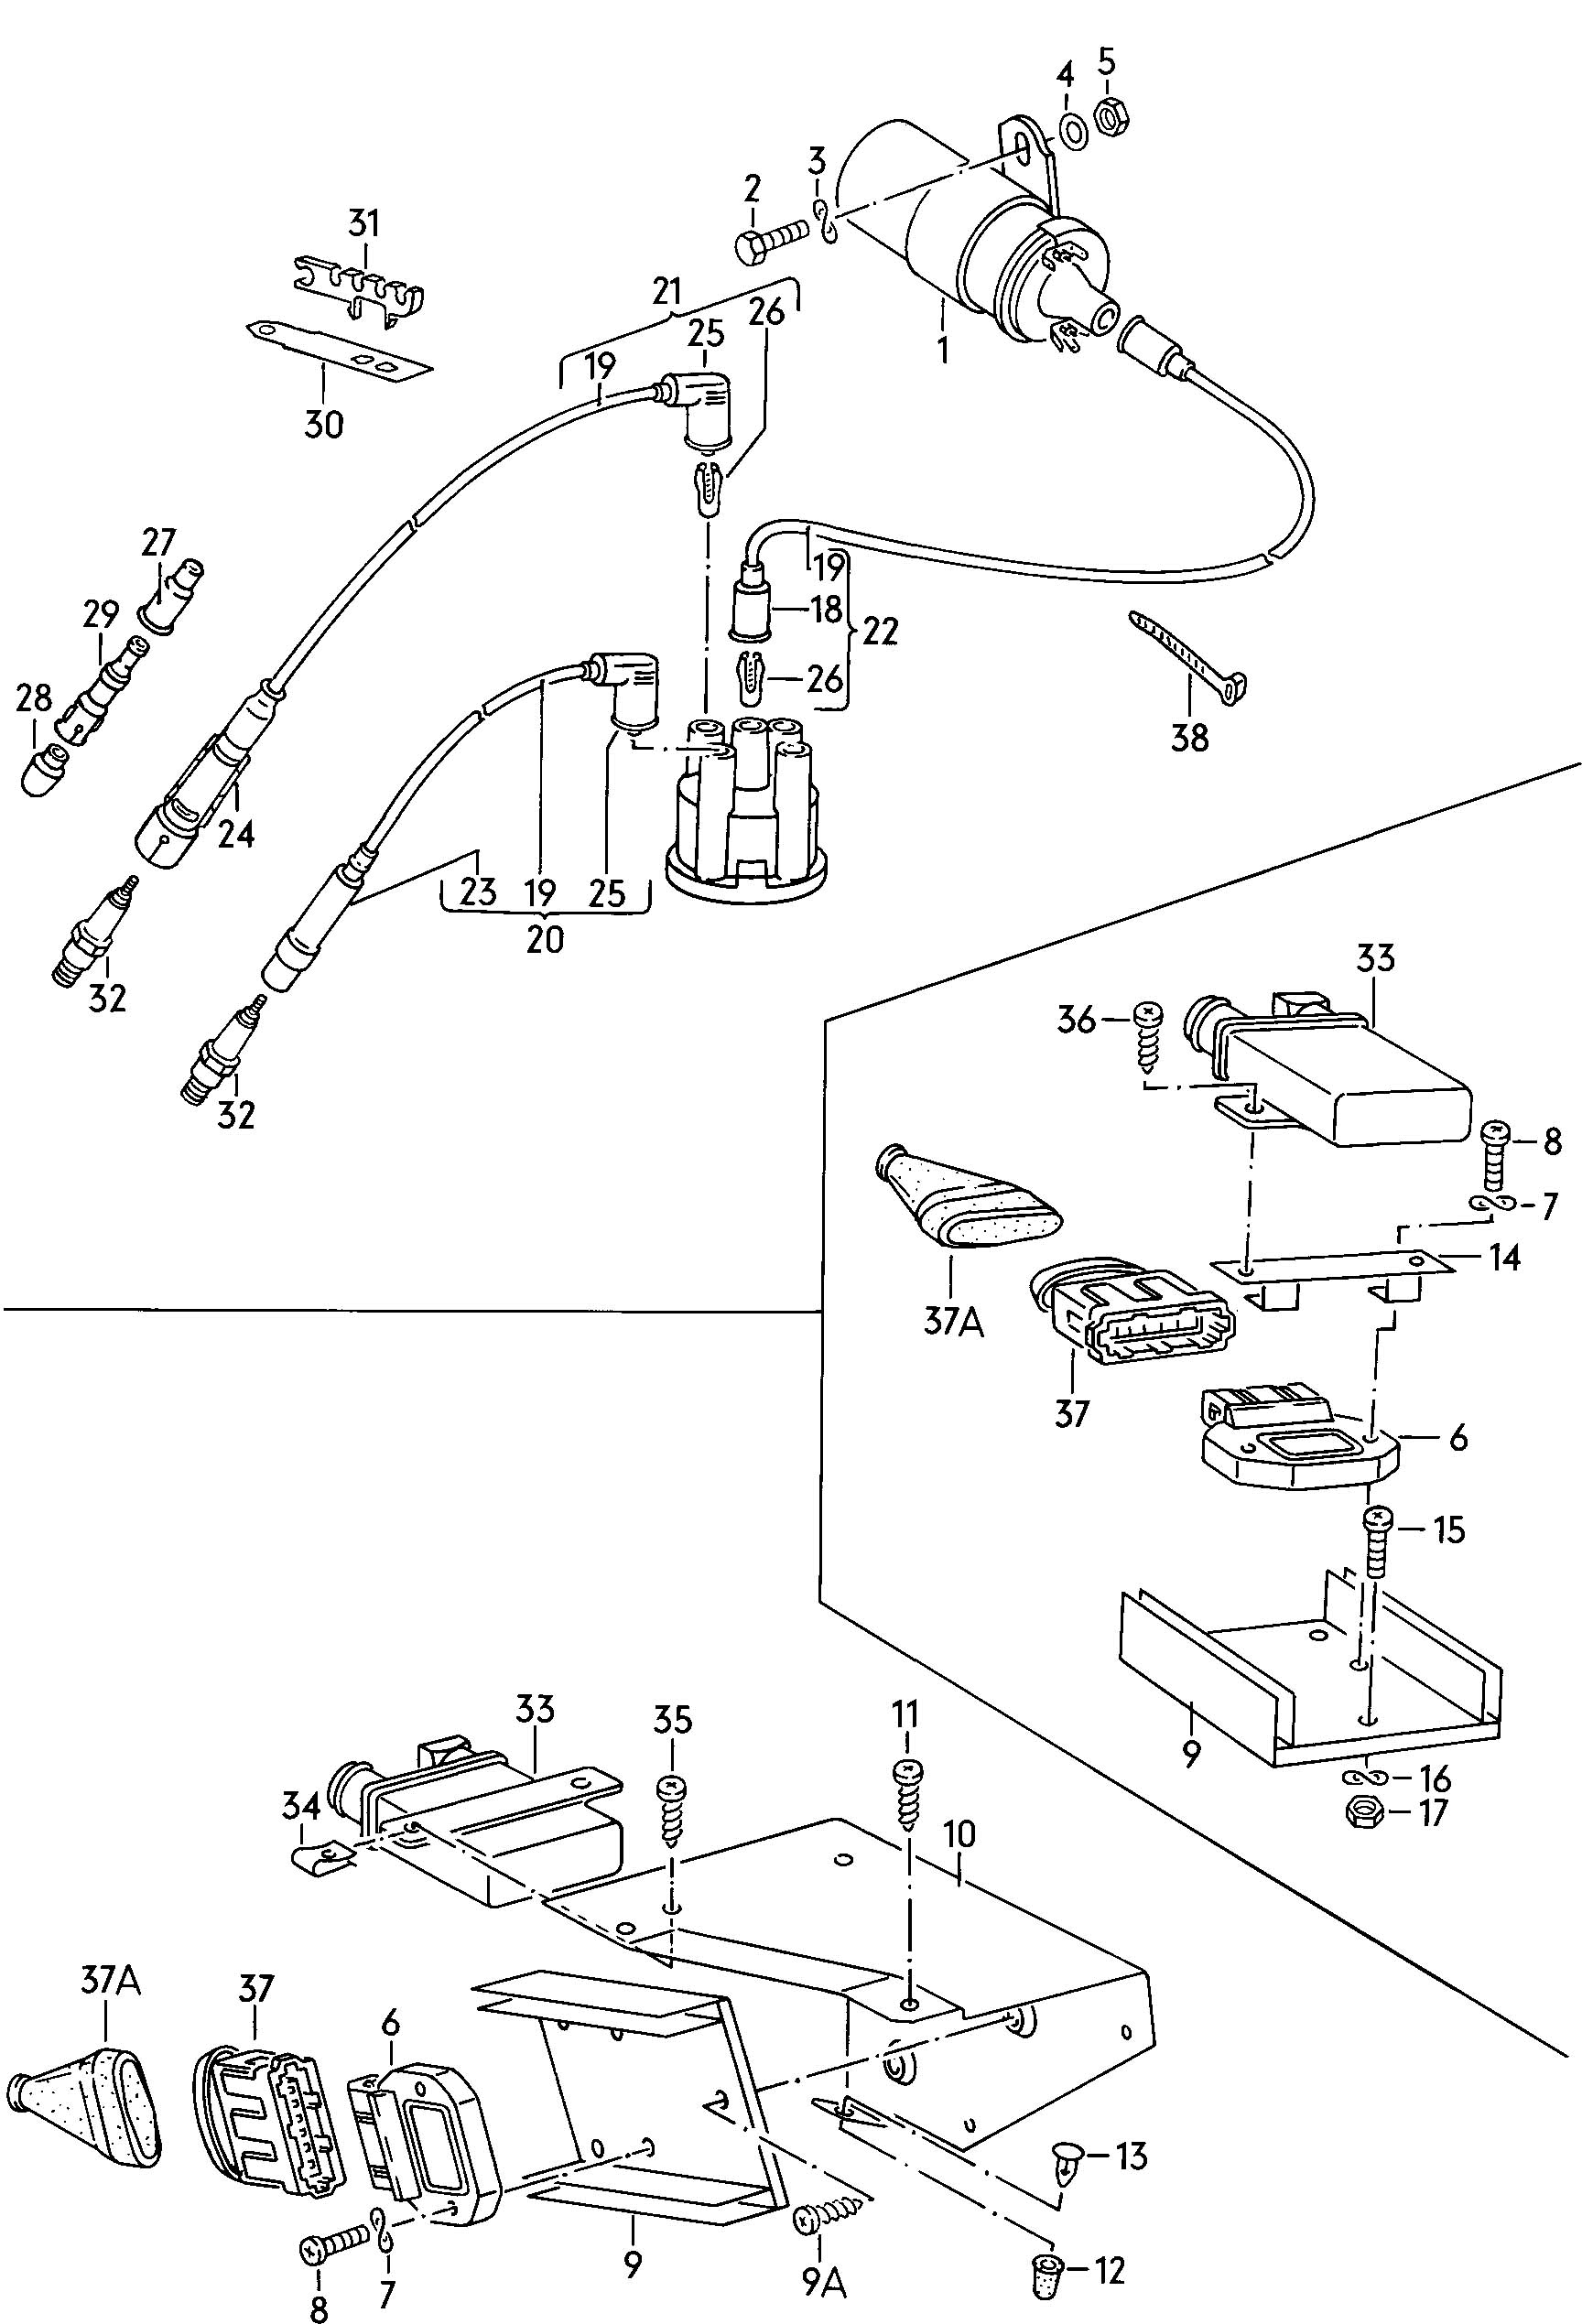 Vw Beetle Coil Wiring Diagram from static-cdn.imageservice.cloud